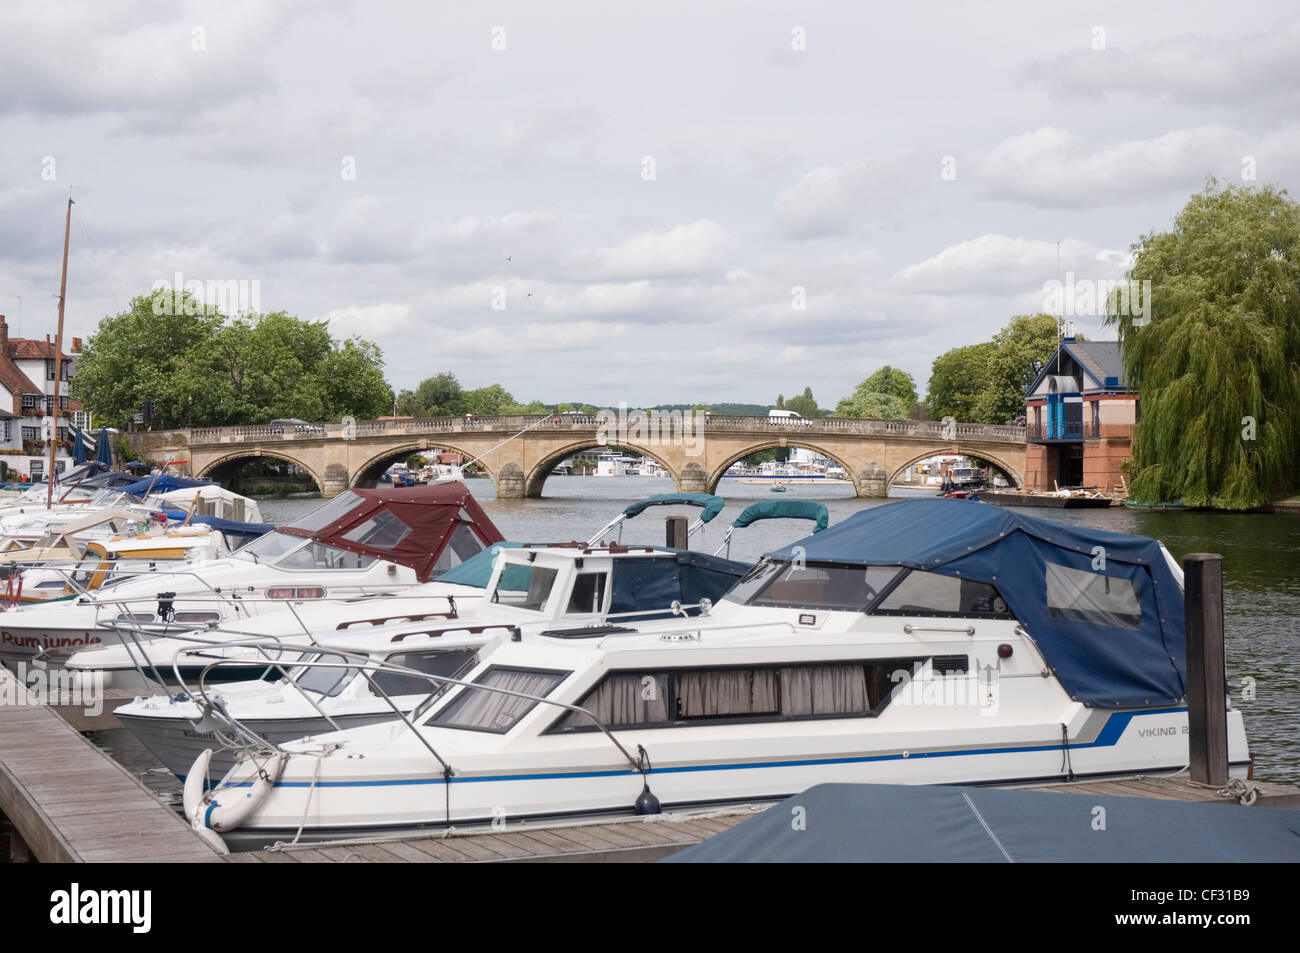 Henley on Thames - Oxon - moored river cruisers and the town bridge - rebuilt in 1786 - Stock Image